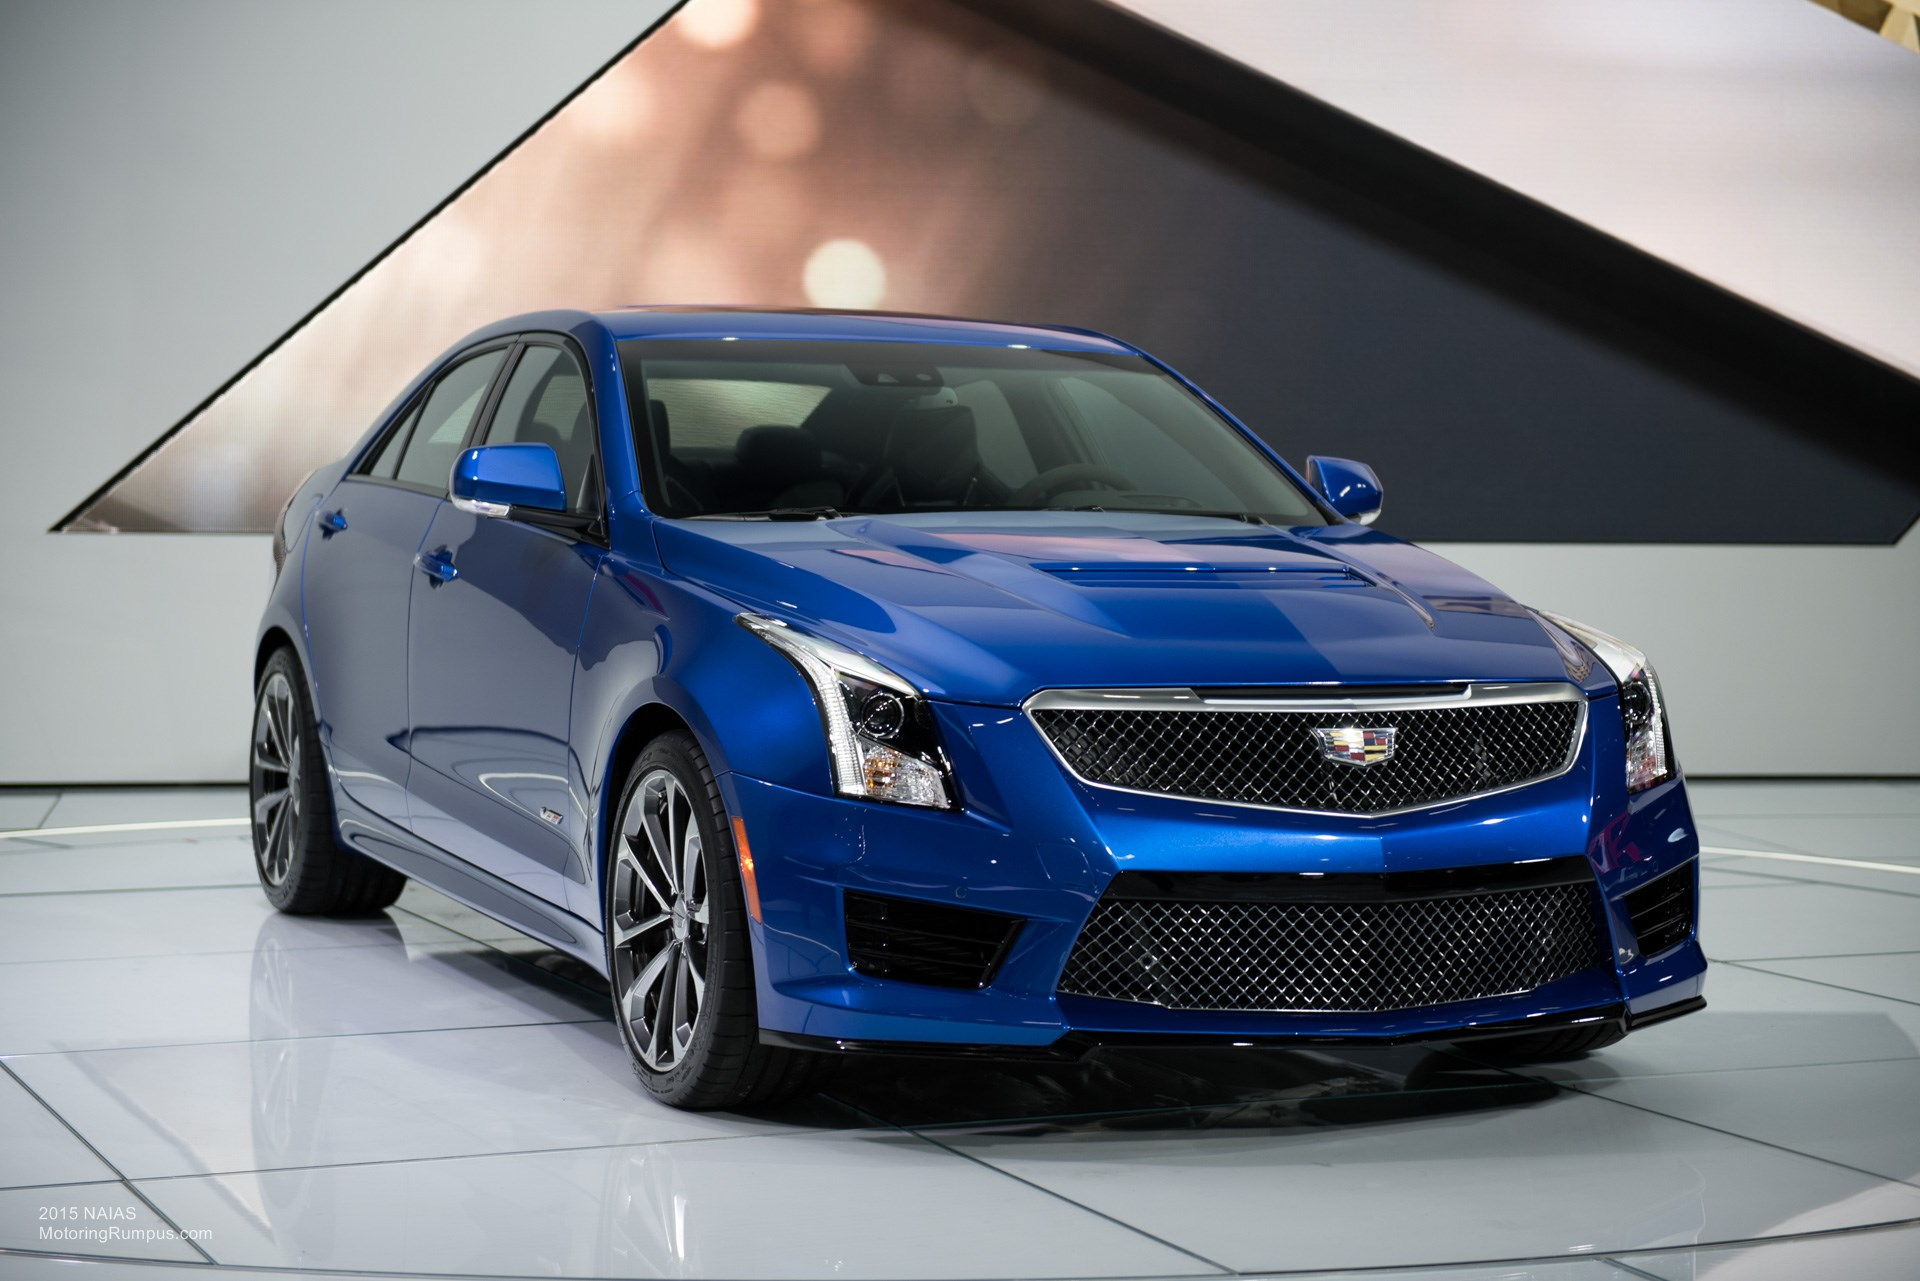 2015 NAIAS Cadillac ATS-V Sedan